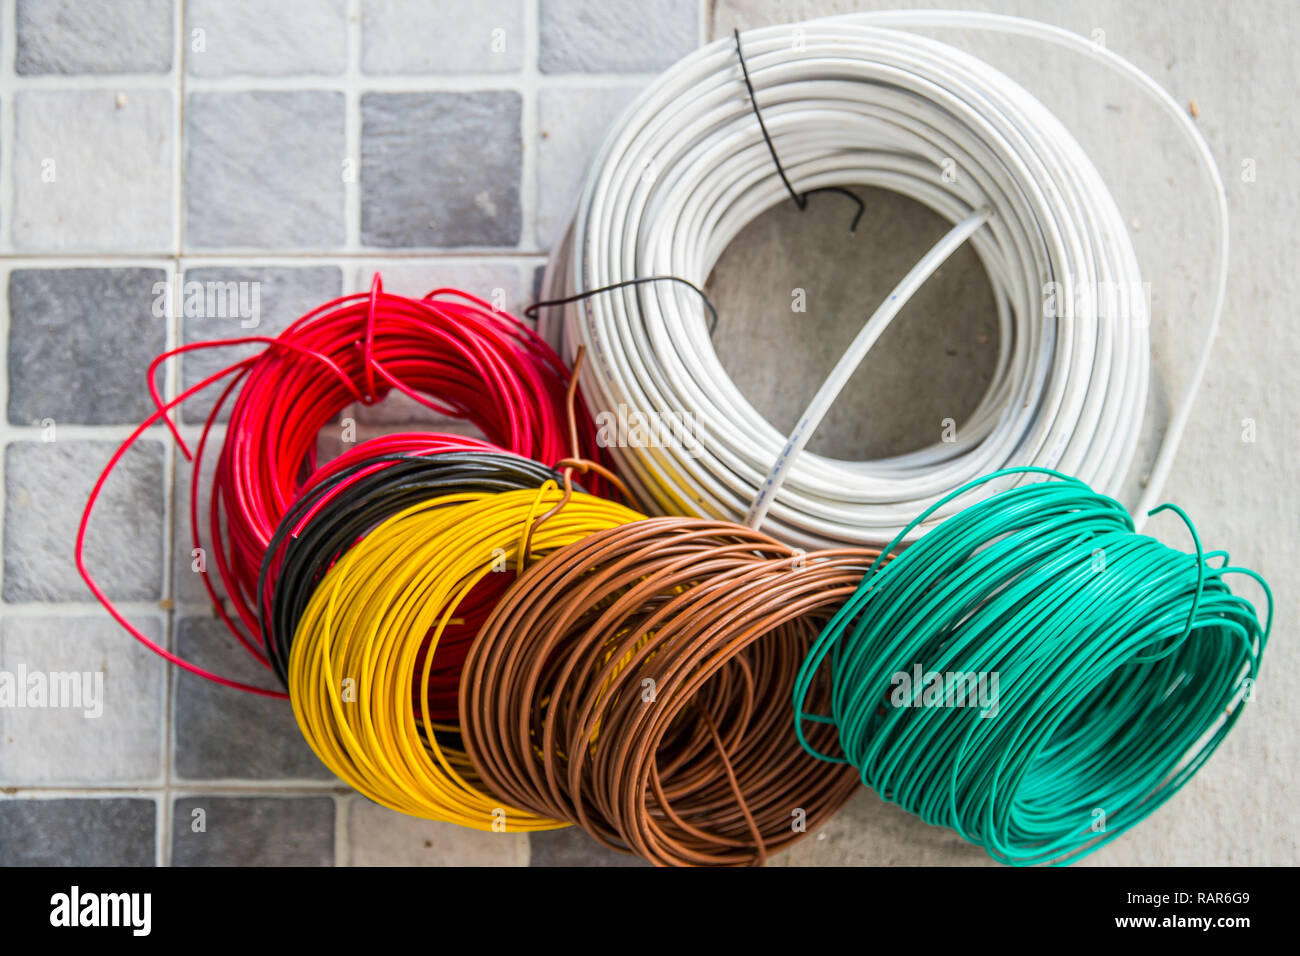 hight resolution of colorful row electricity cable for interior home building power wiring many type